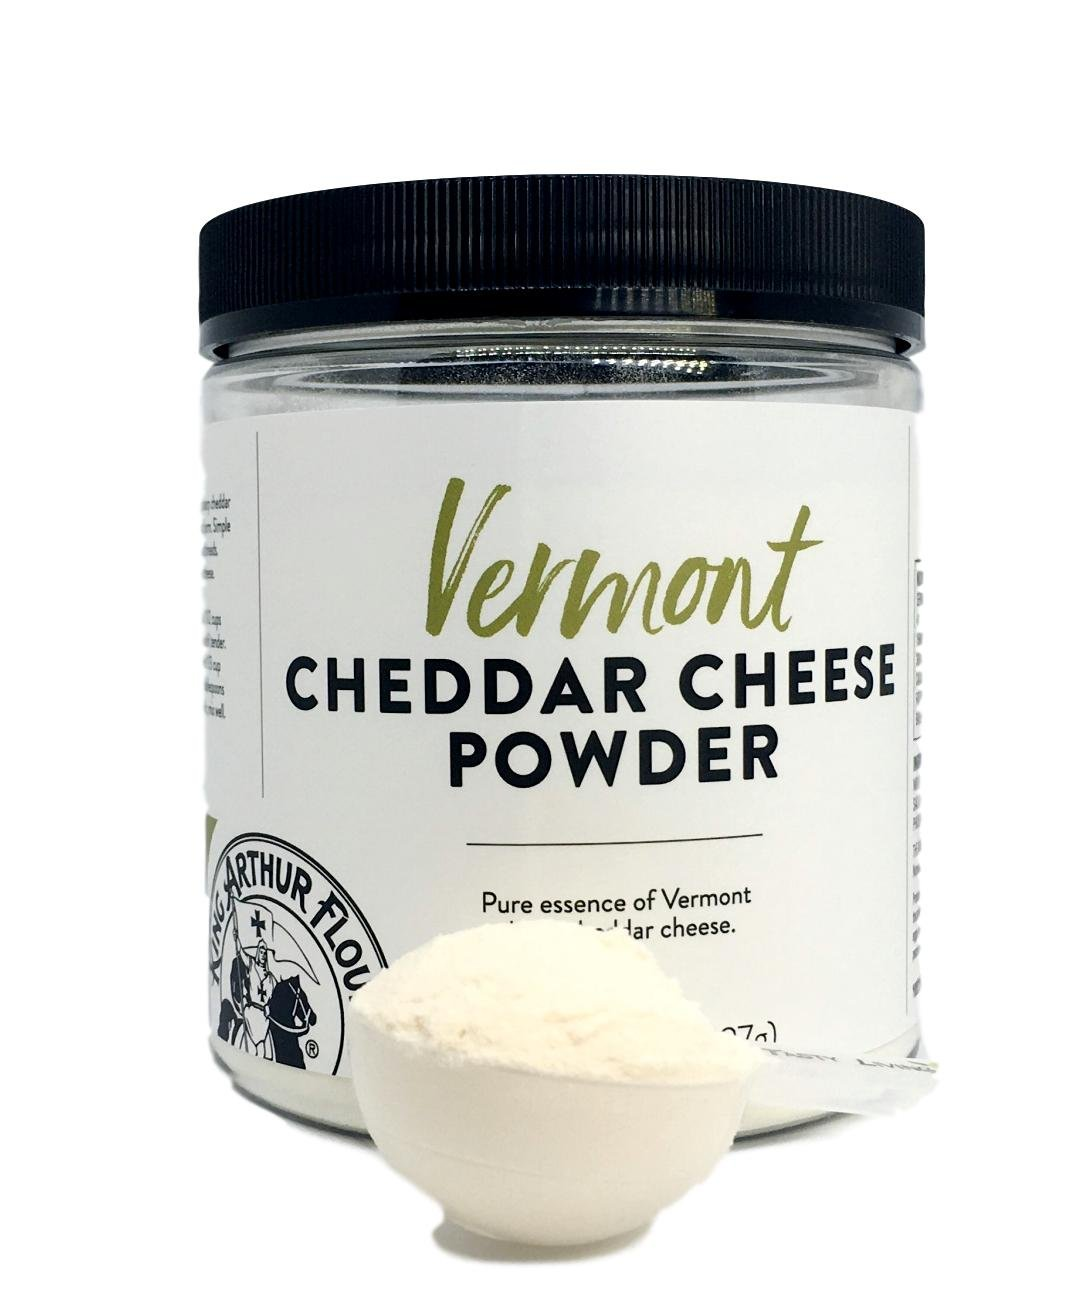 King Arthur Flour Vermont Cheddar Cheese Powder – 8 OZ (227g) With Measuring Scoop Included